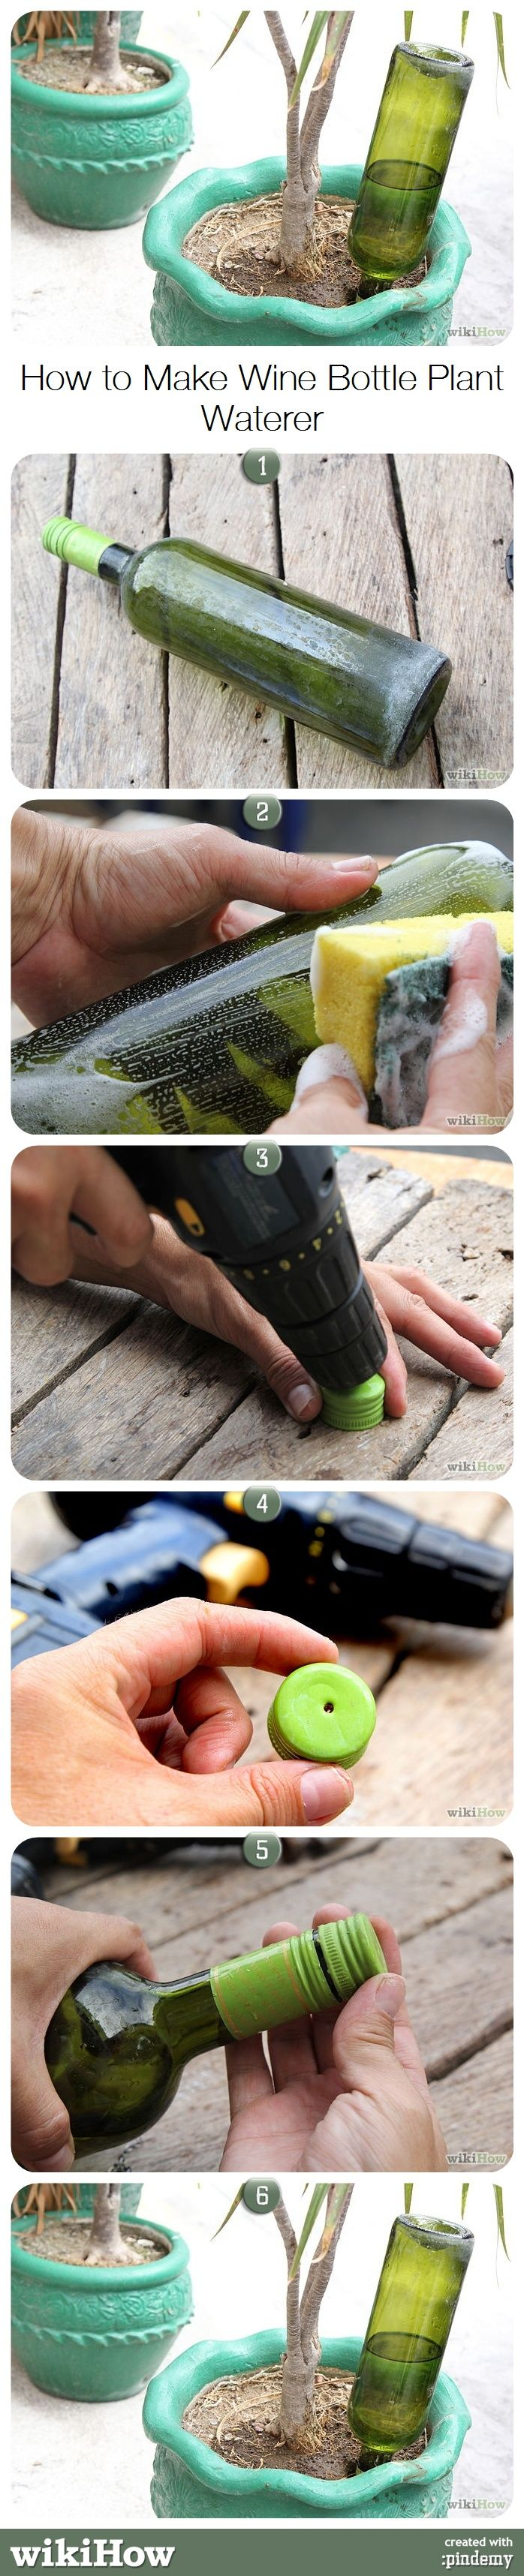 How to Make Wine Bottle Plant Waterer, from wikiHow.com